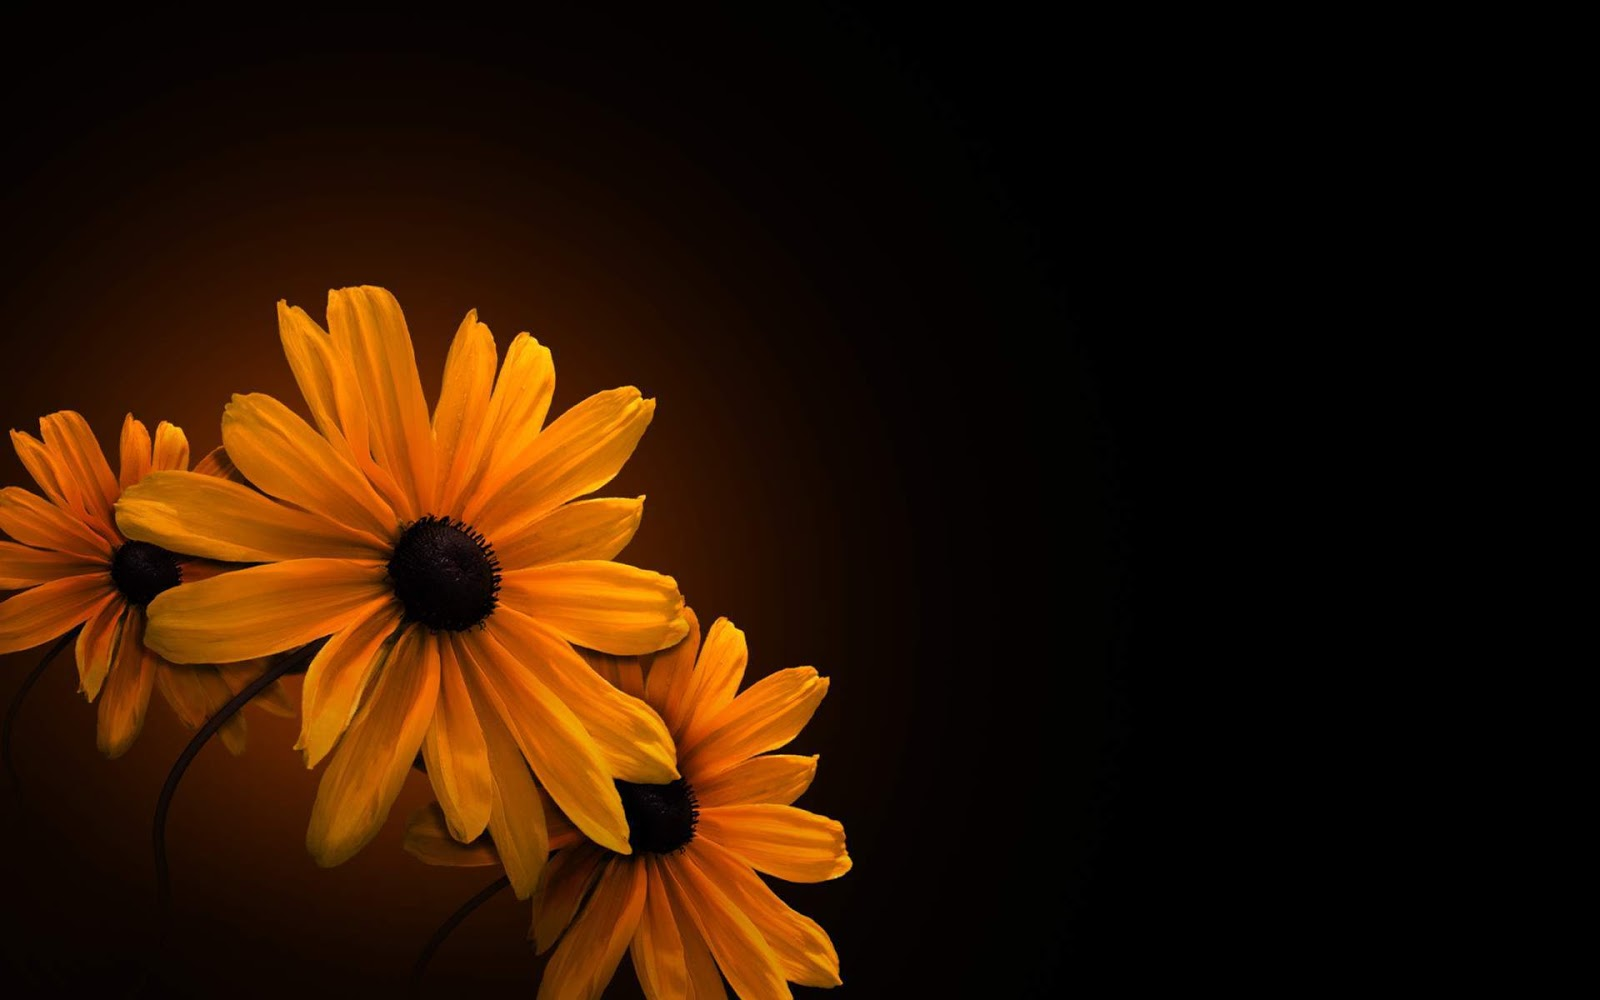 flower on black background wallpaper hd high resolution backgrounds 1600x1000